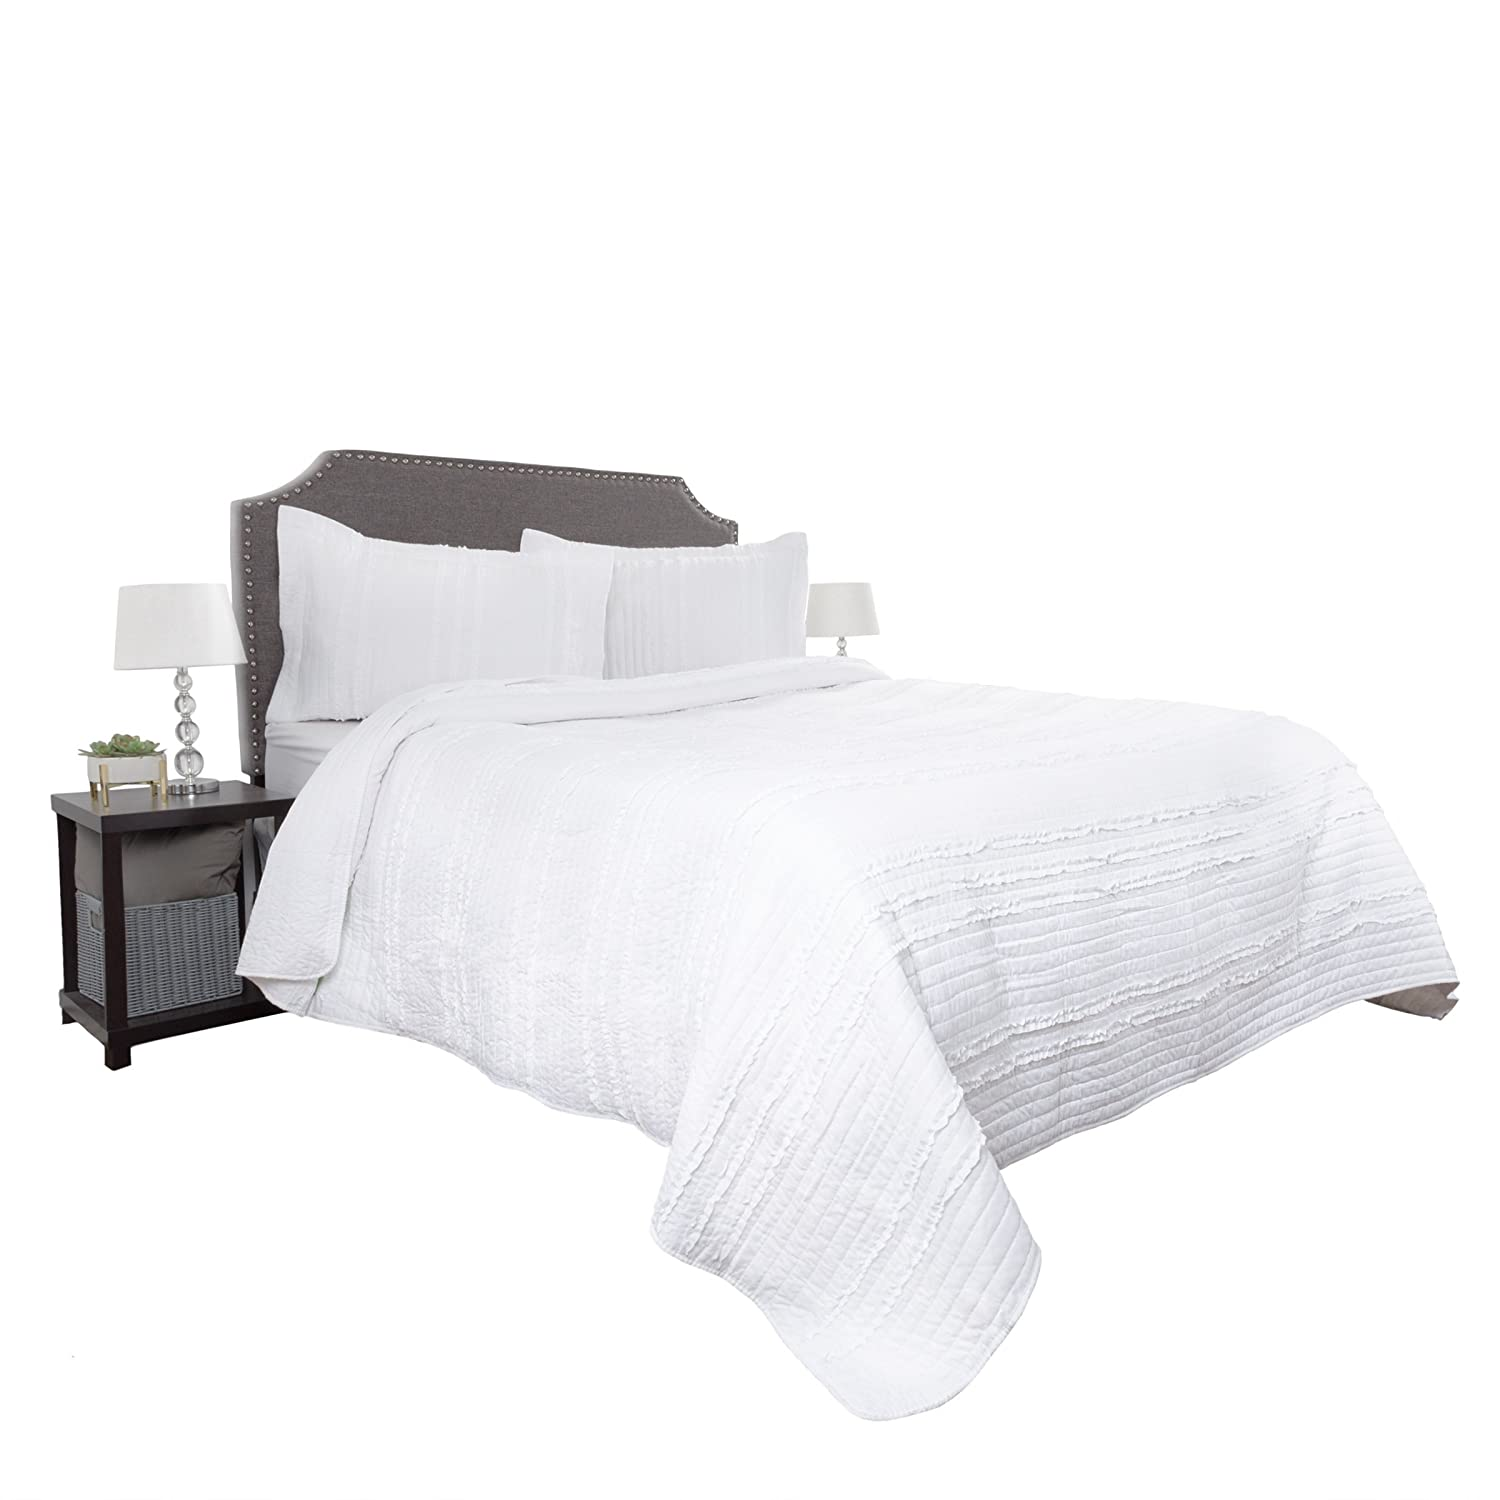 Hypoallergenic 3 Piece Oversized Full//Queen Quilt Bed Set with Striped Ruffle Design 66-10069-FQ-I Quilt and Sham Set Ivory Kadyn Series By Lavish Home